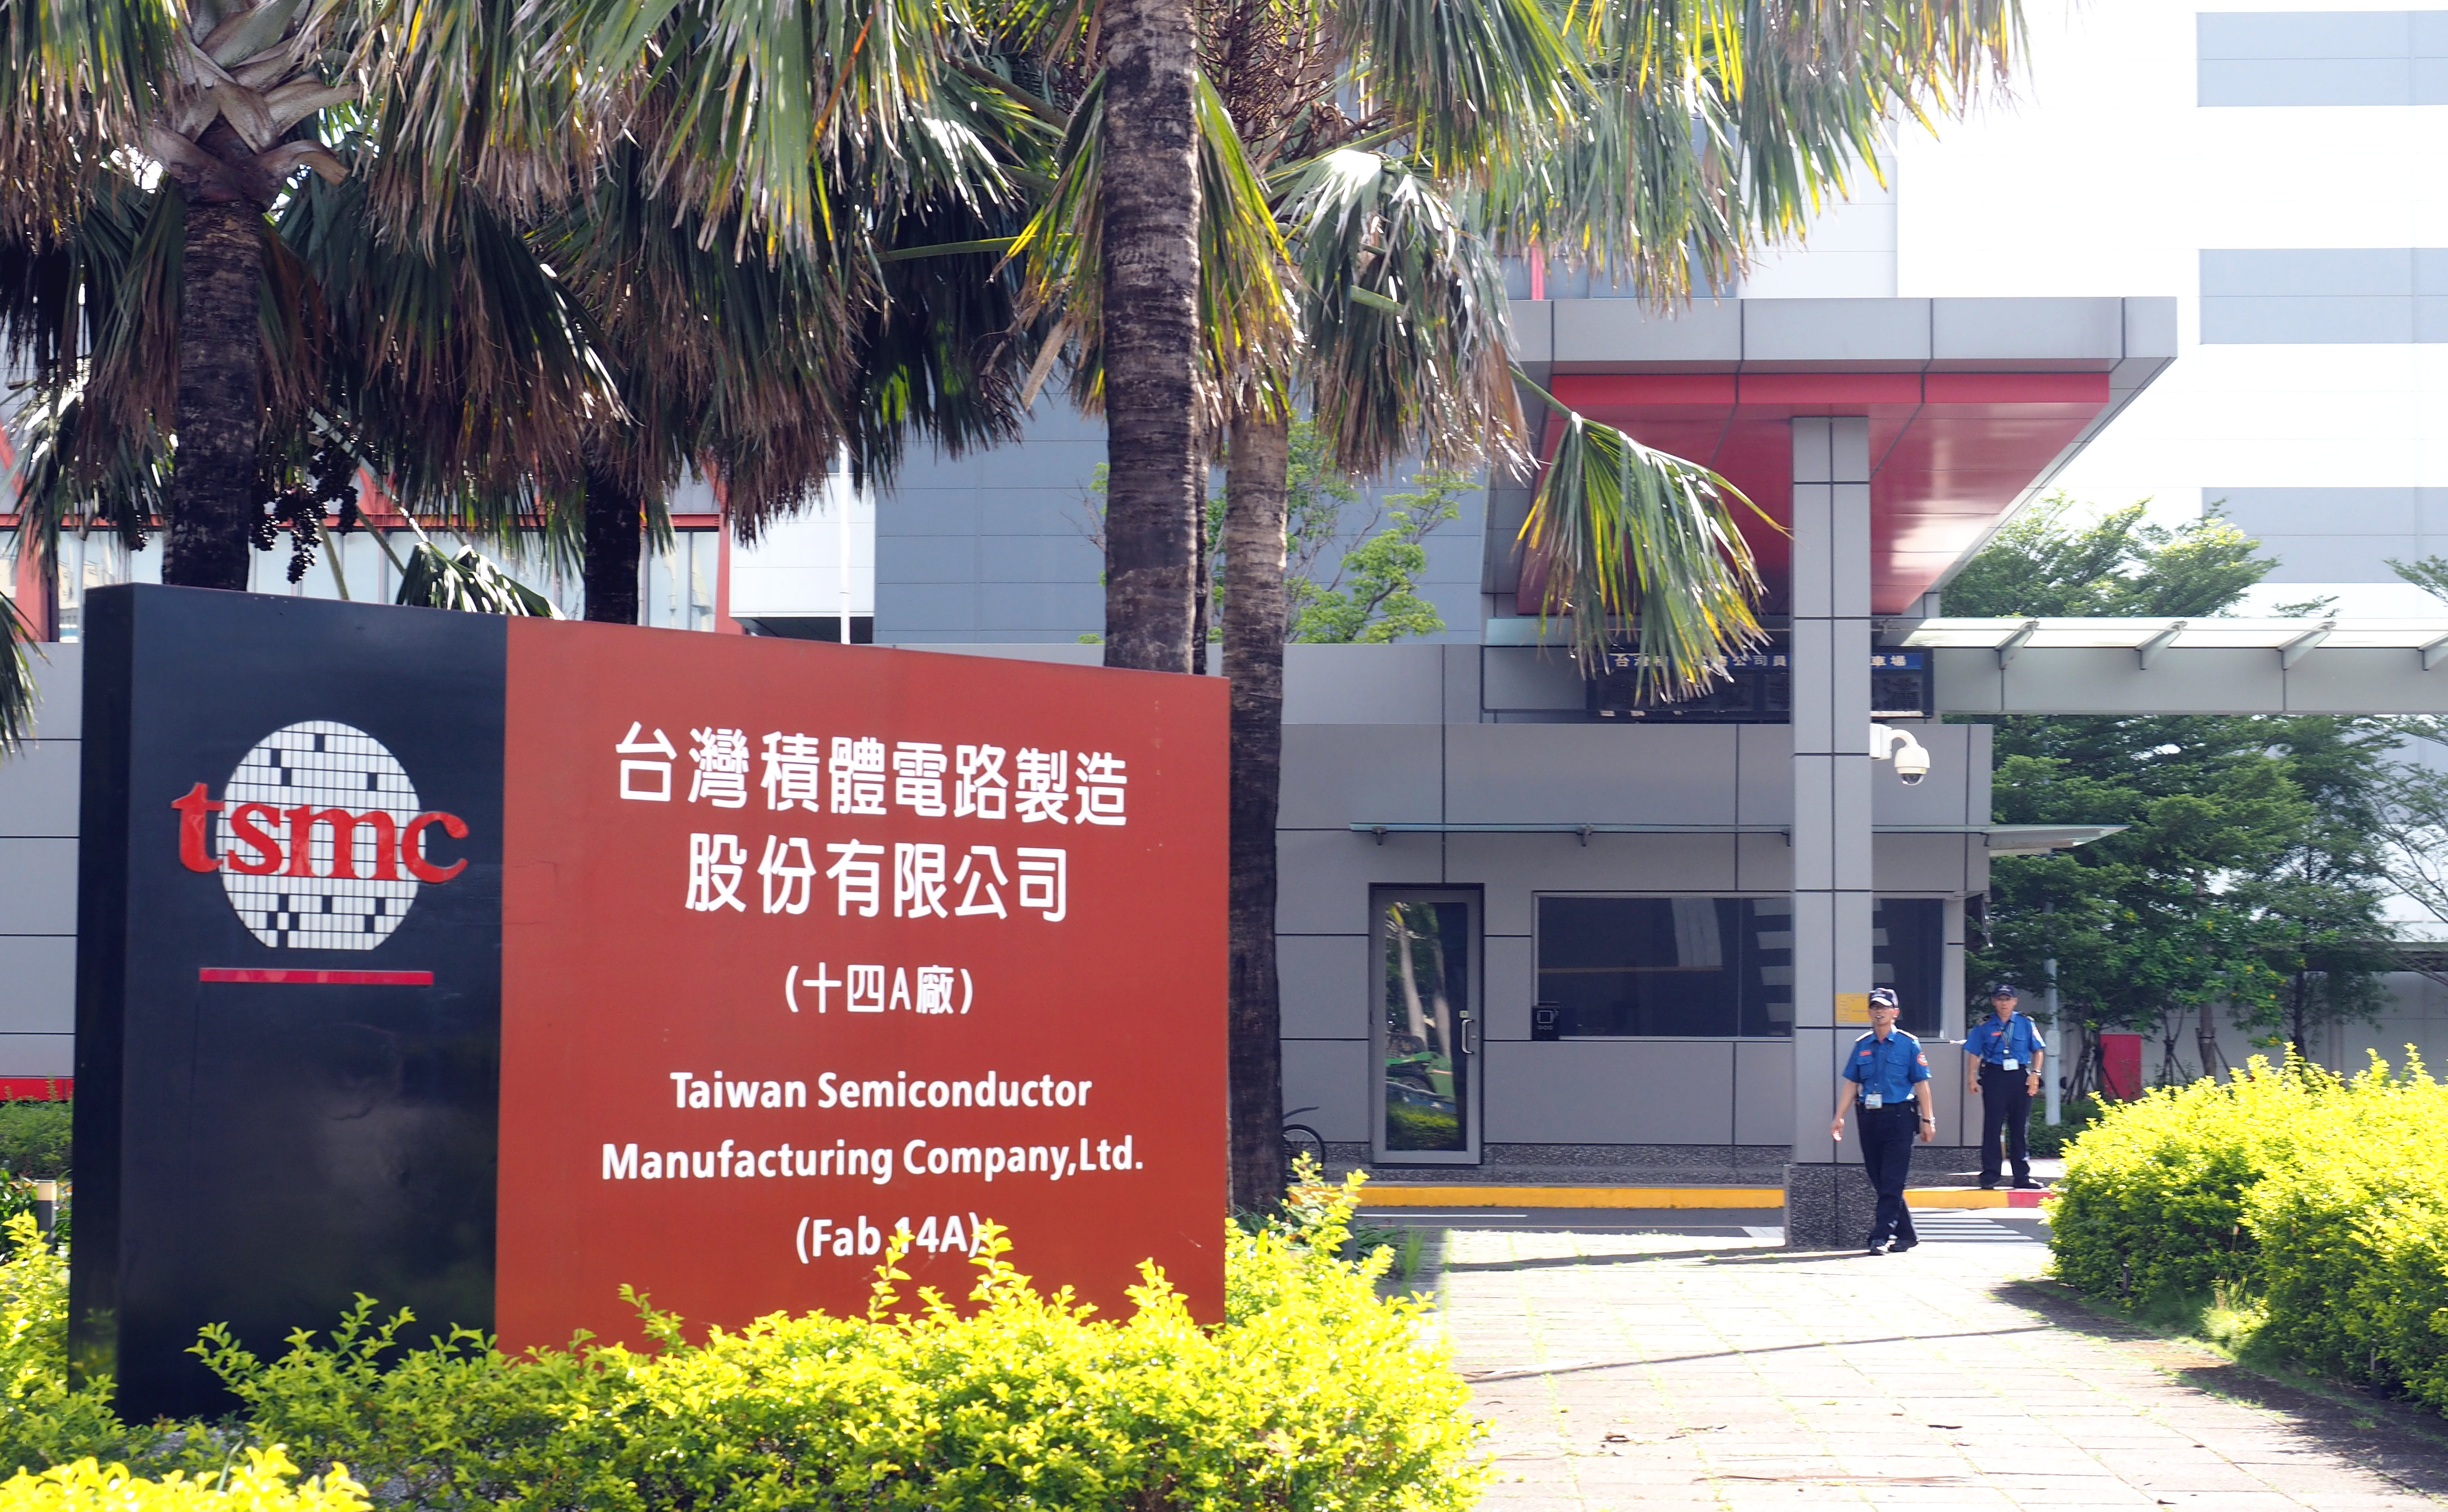 Taiwan's TSMC eyes robust growth despite unfavorable global conditions